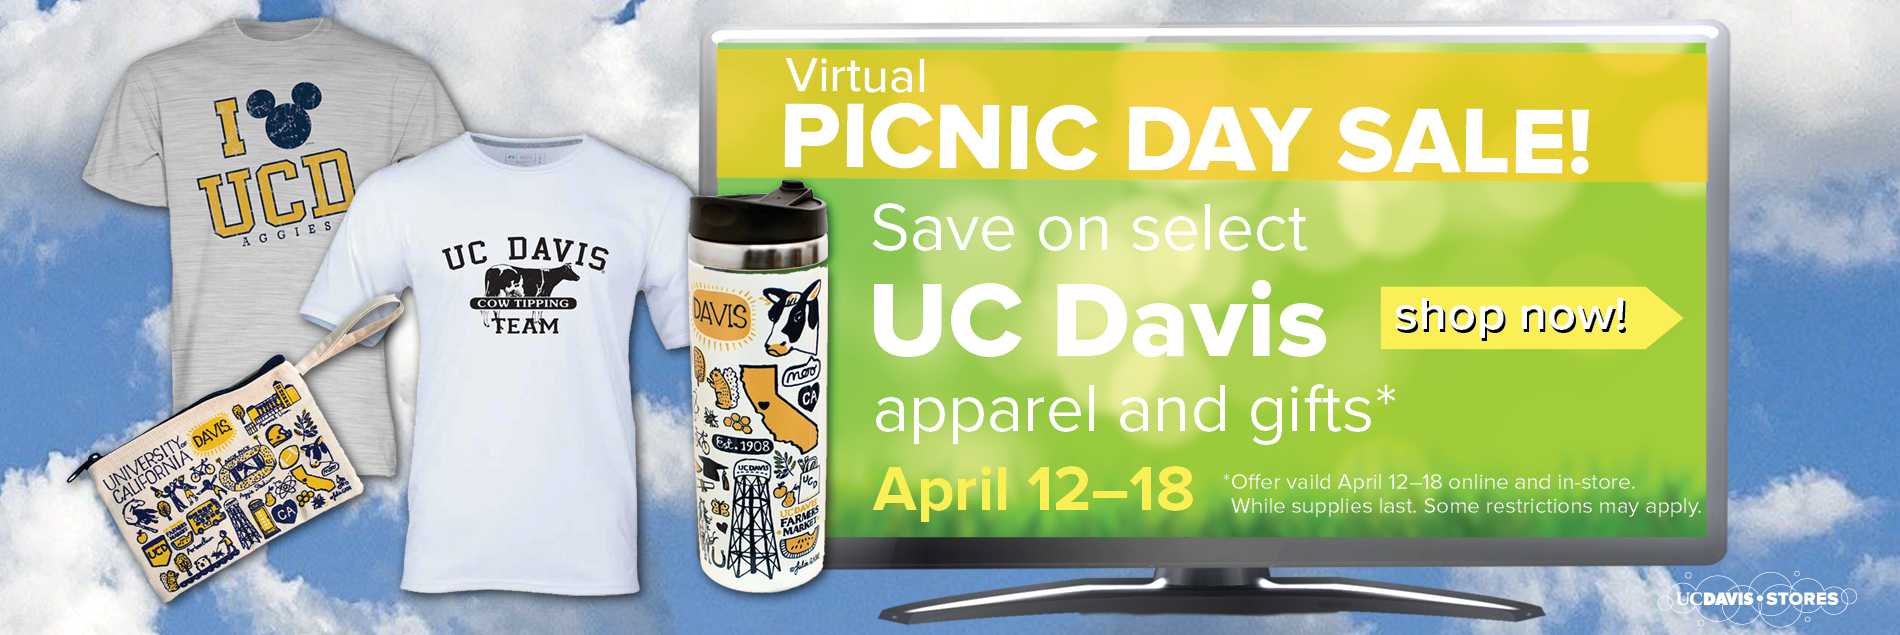 Picnic Day Sale Banner